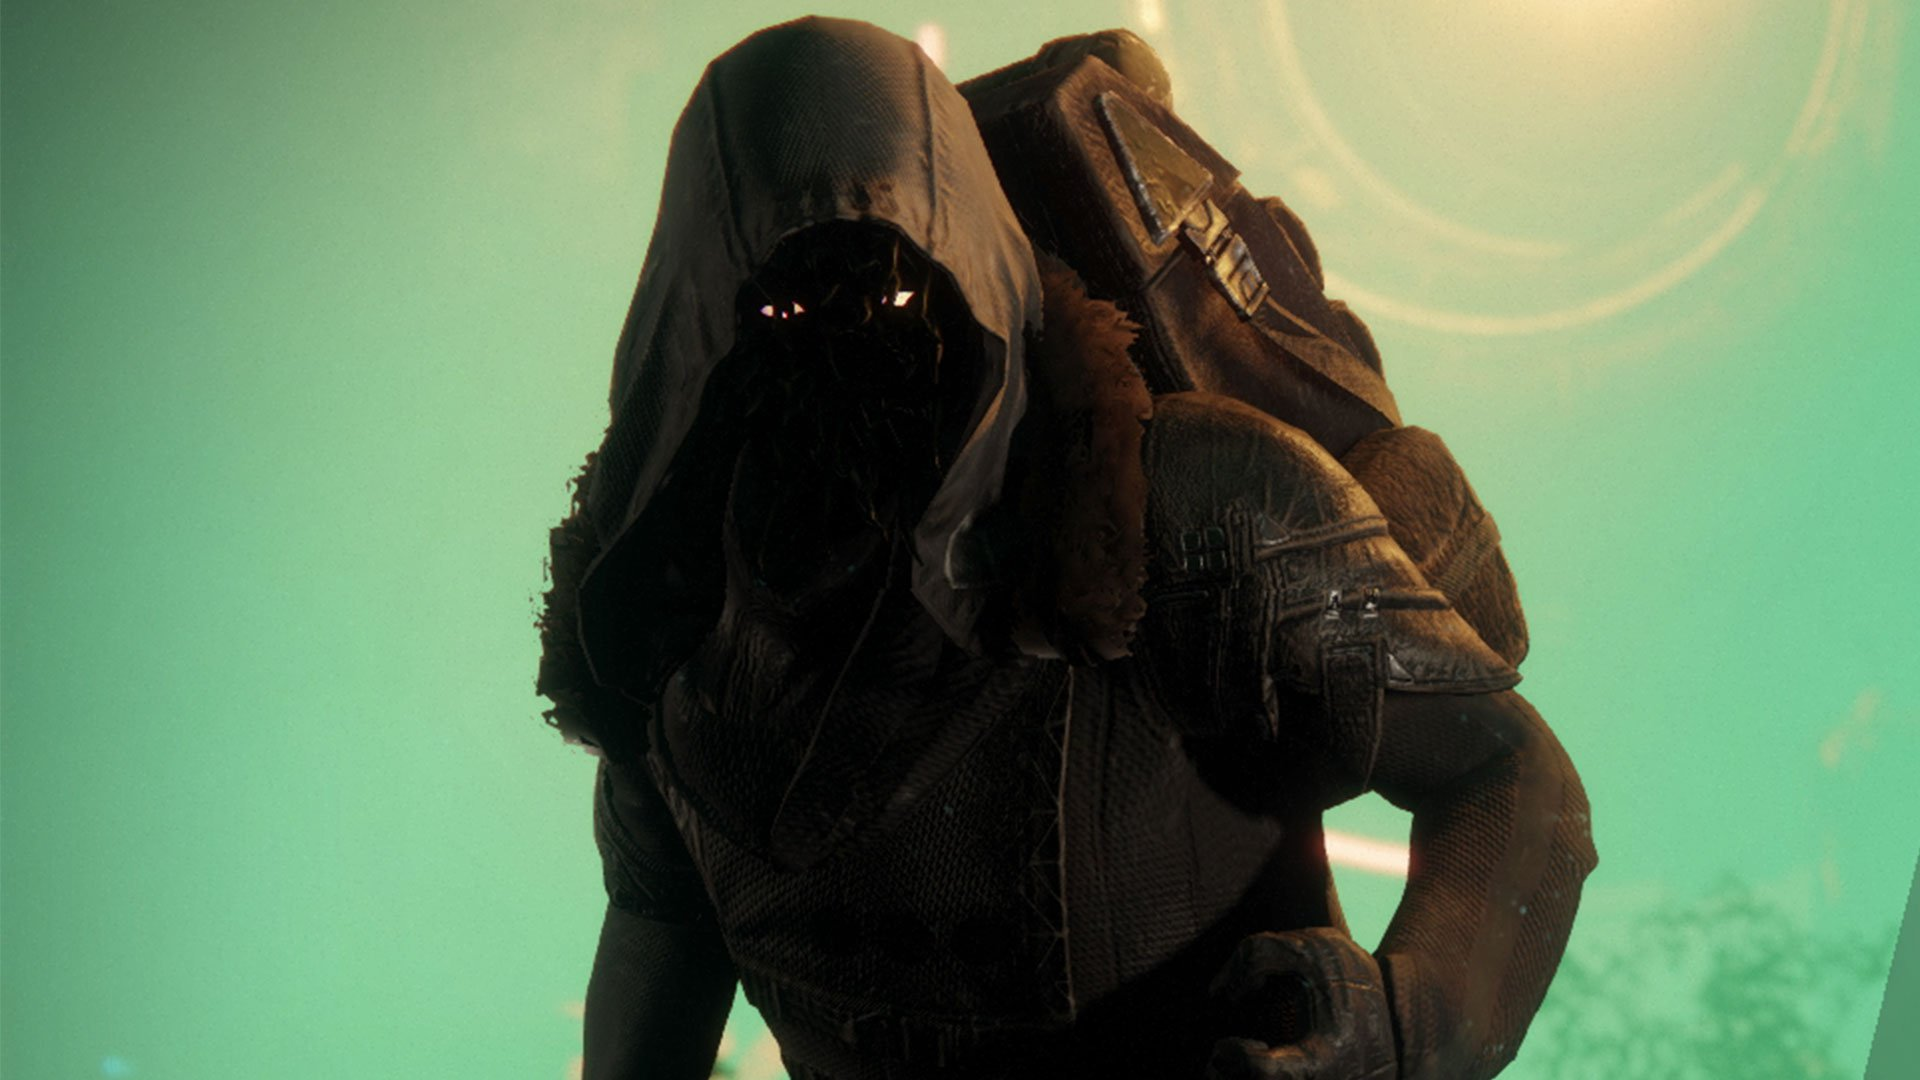 Xur can be found in the Winding Cove area of the EDZ on Earth in Destiny 2 during the week of February 15.